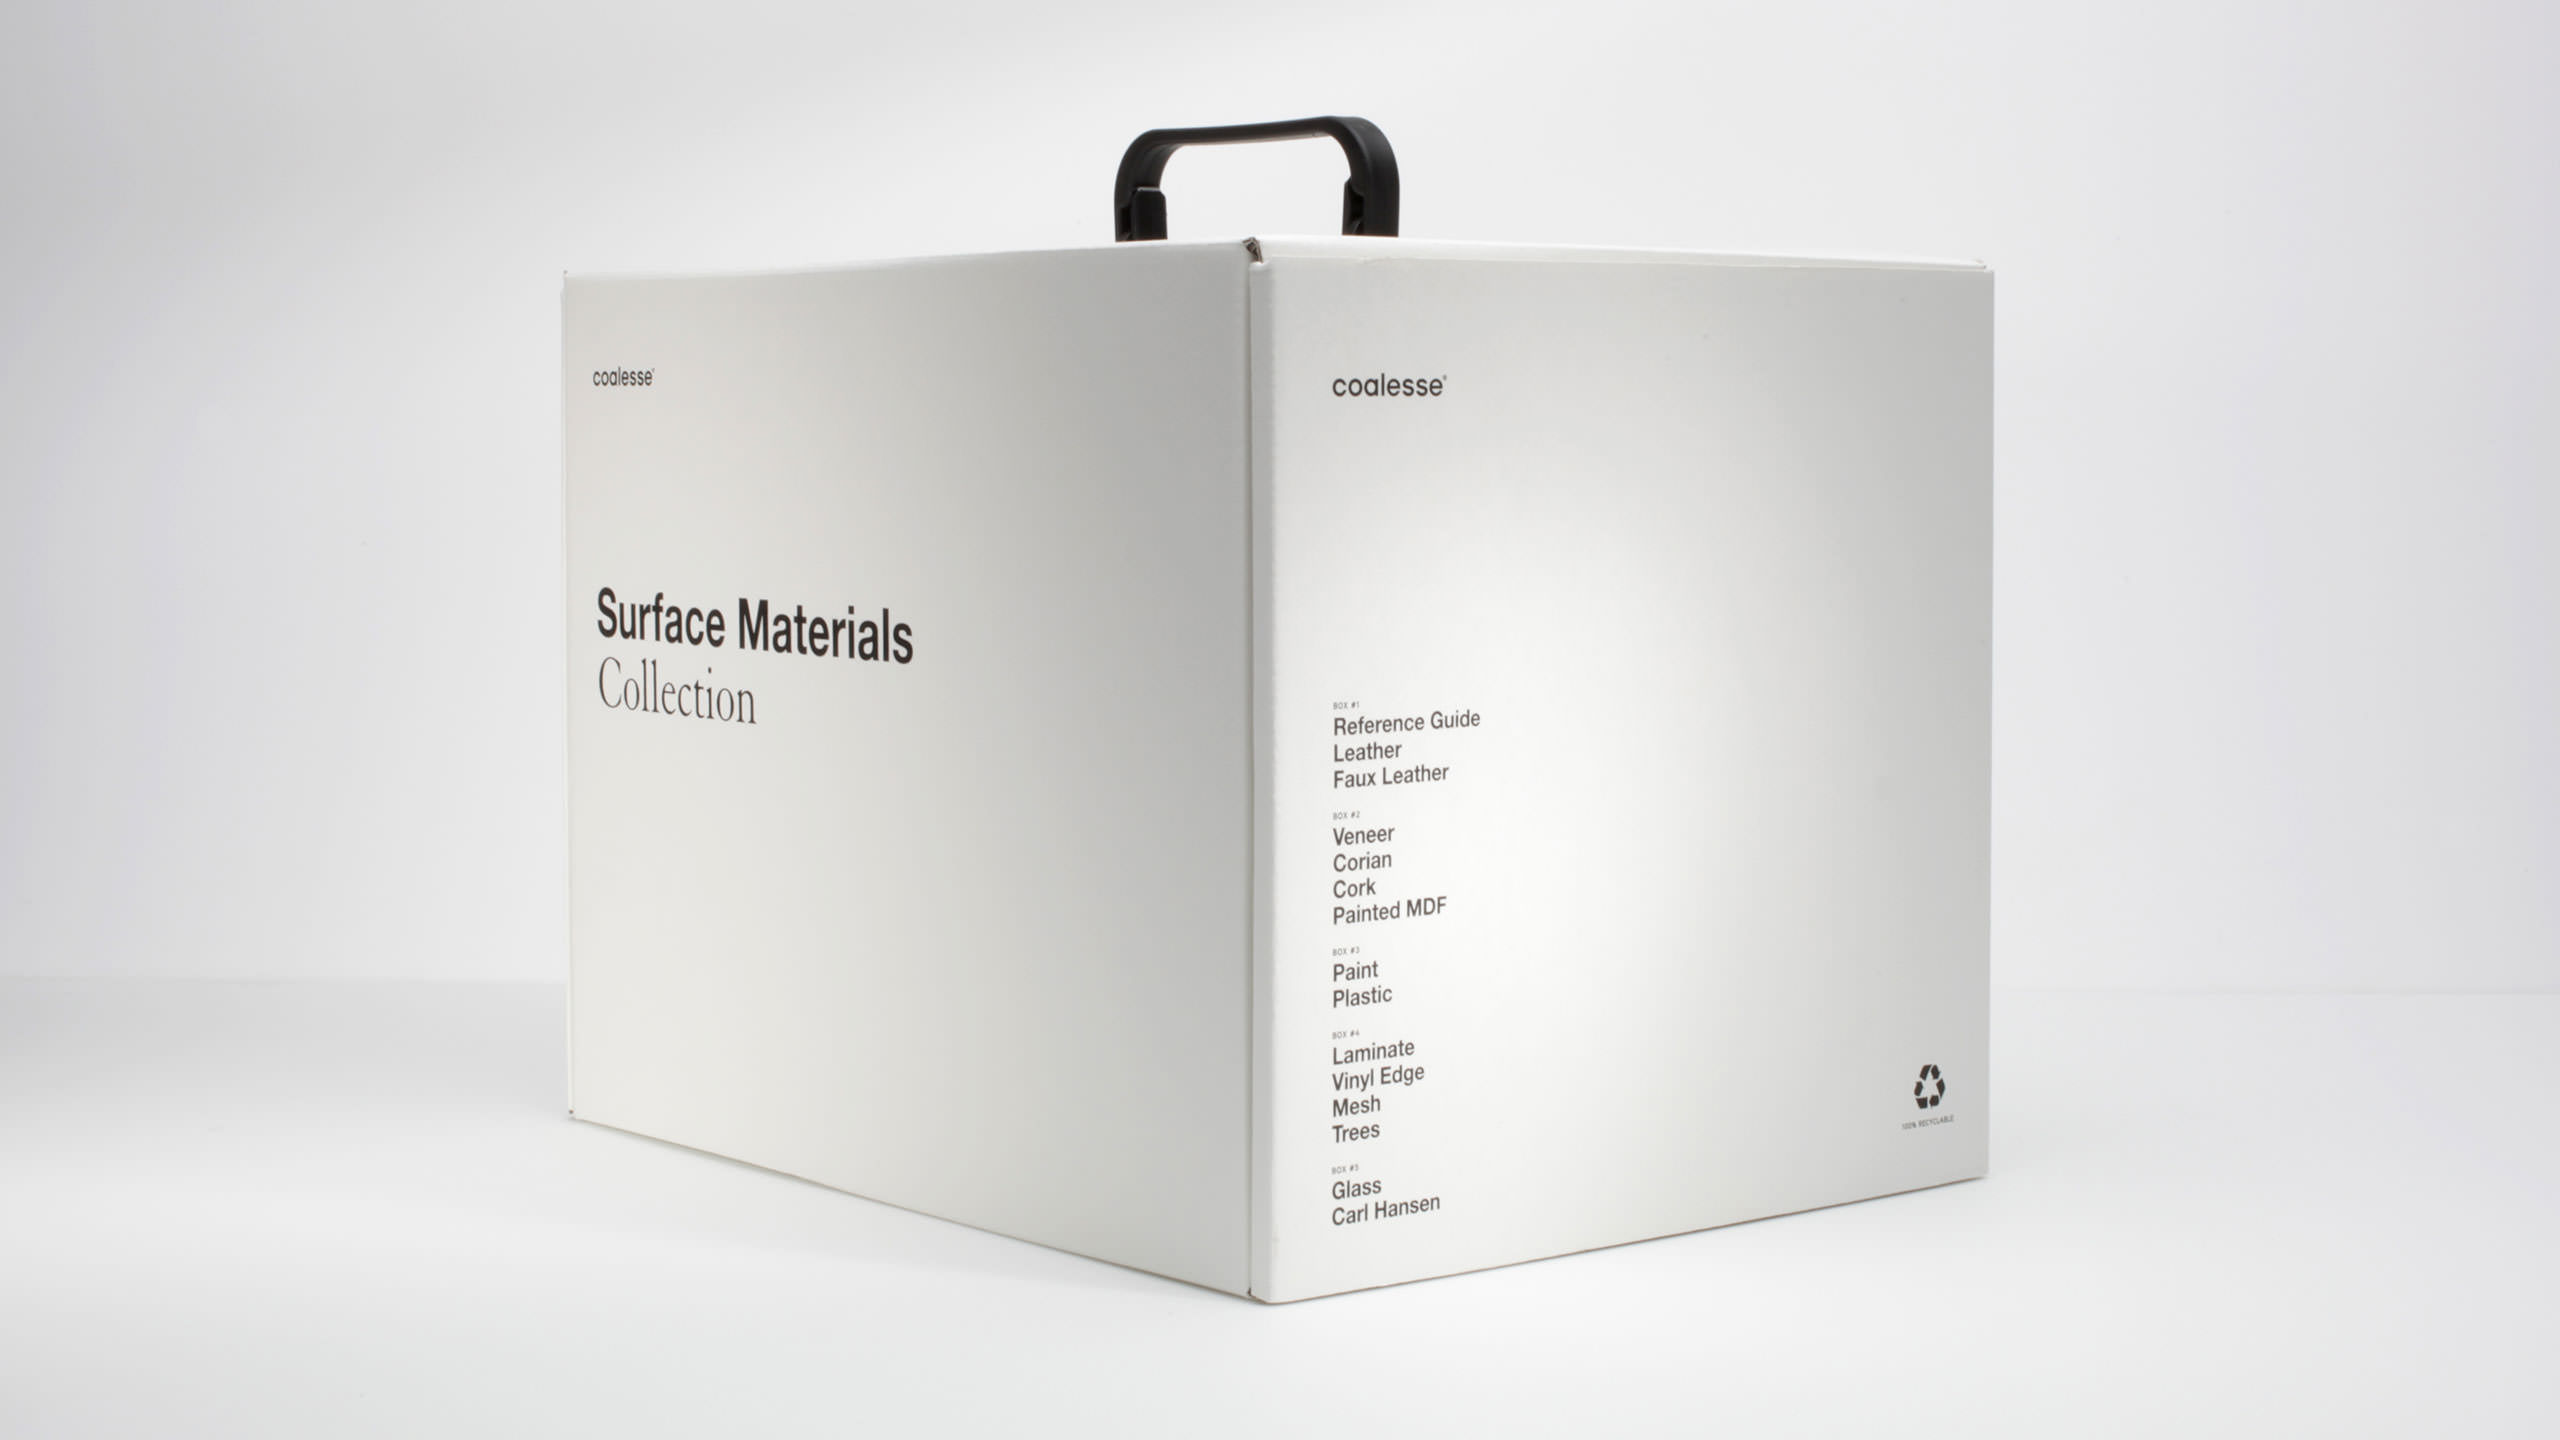 Coalesse Brand Launch Packaging White Box presenting Surface Materials